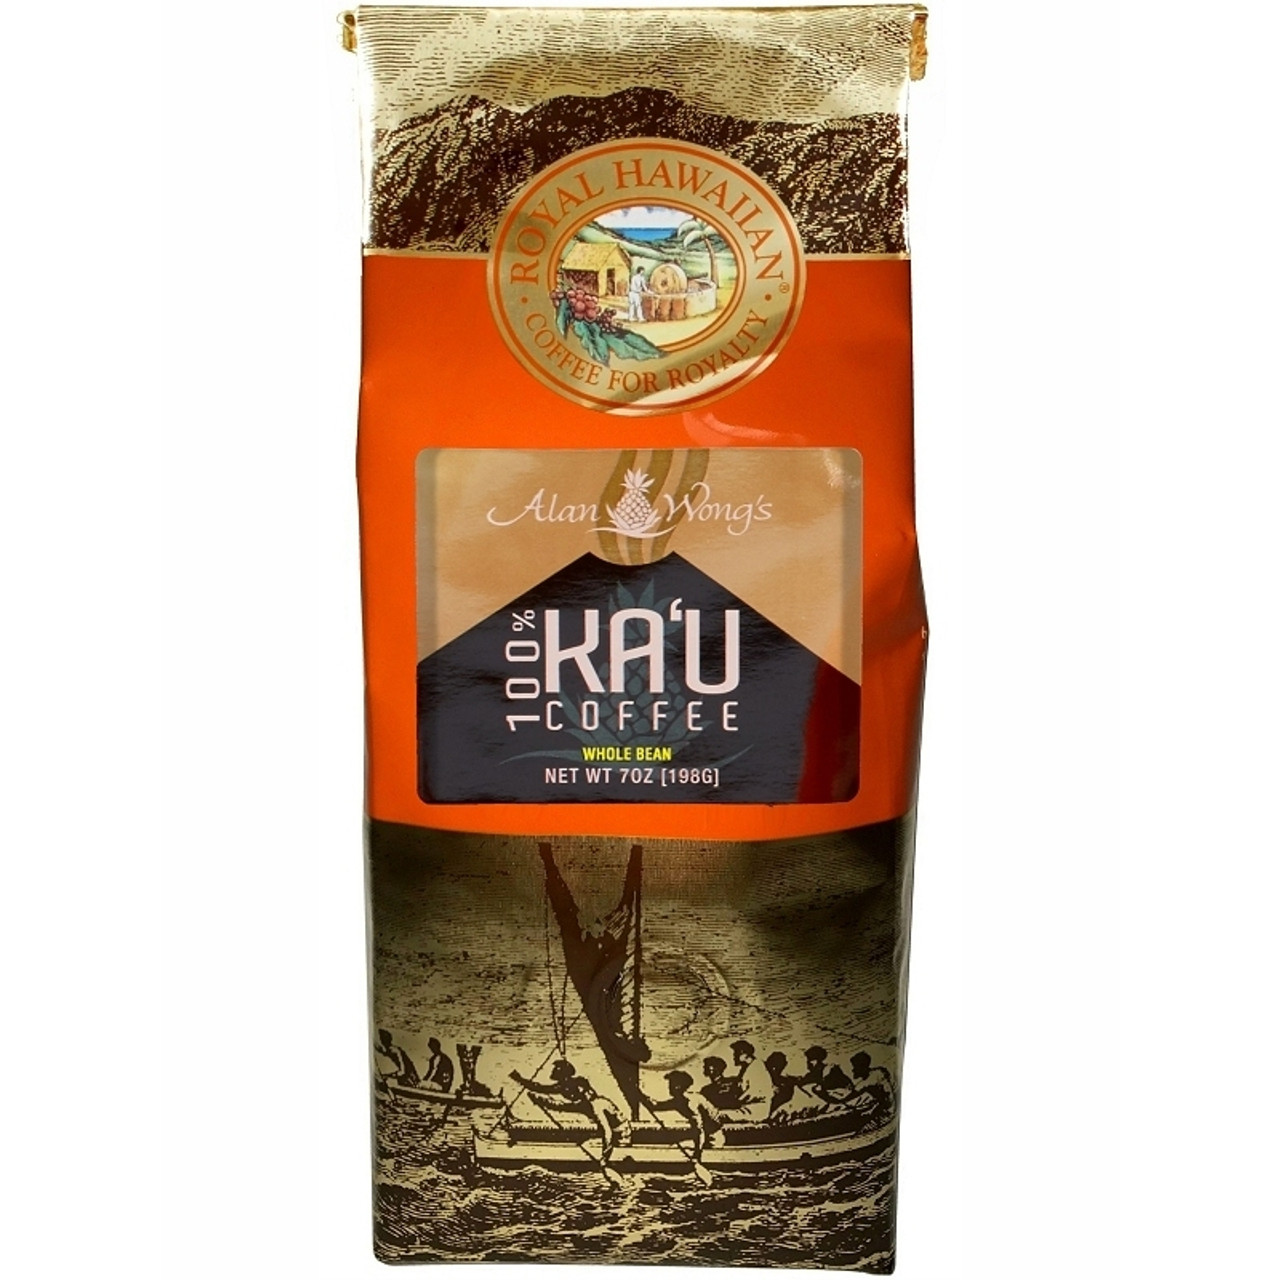 Hawaiian Kau Coffee